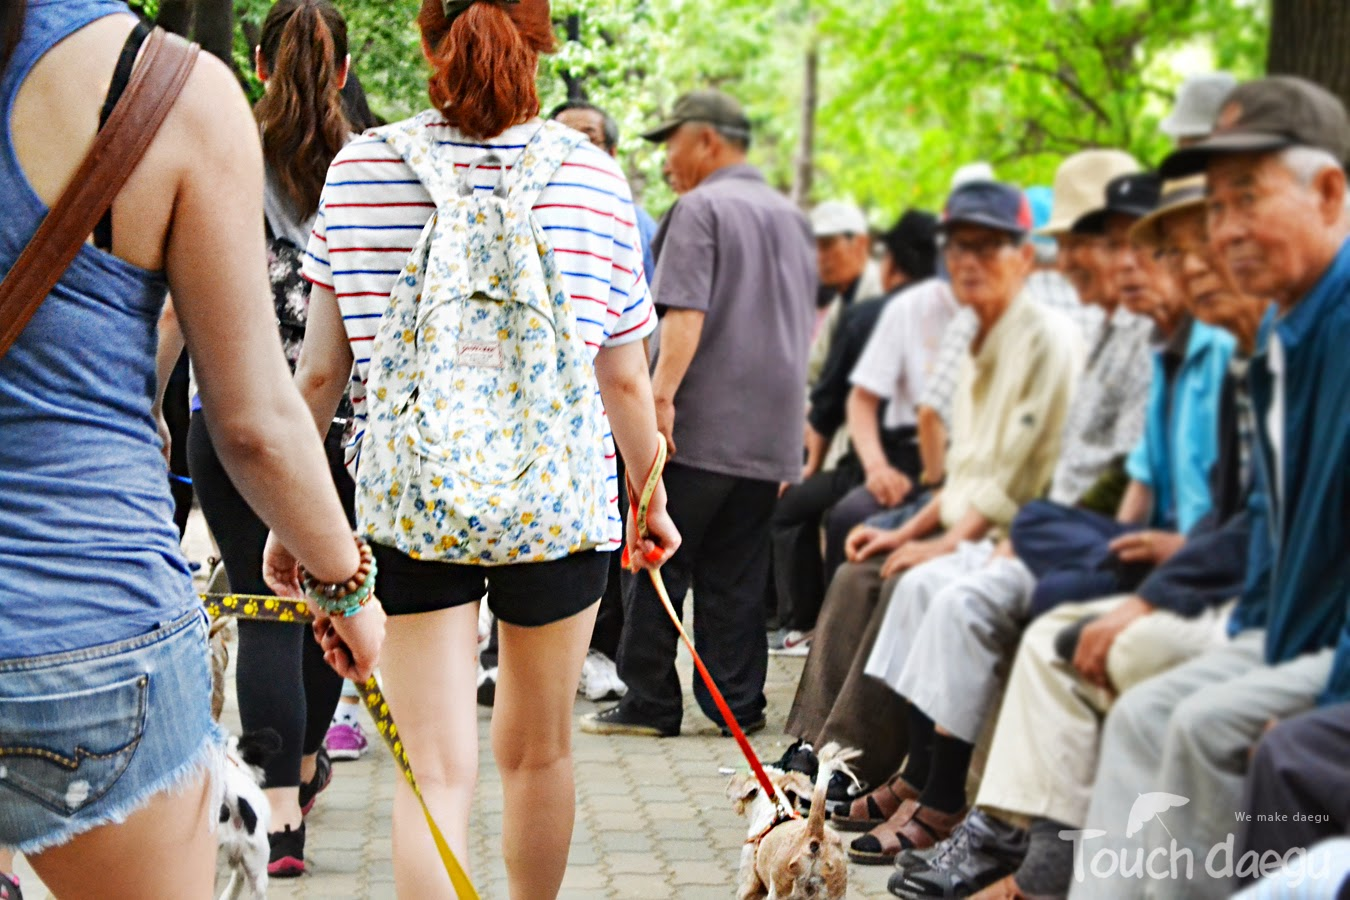 People were paying attention the dogs & the volunteers parade in Duryu Park